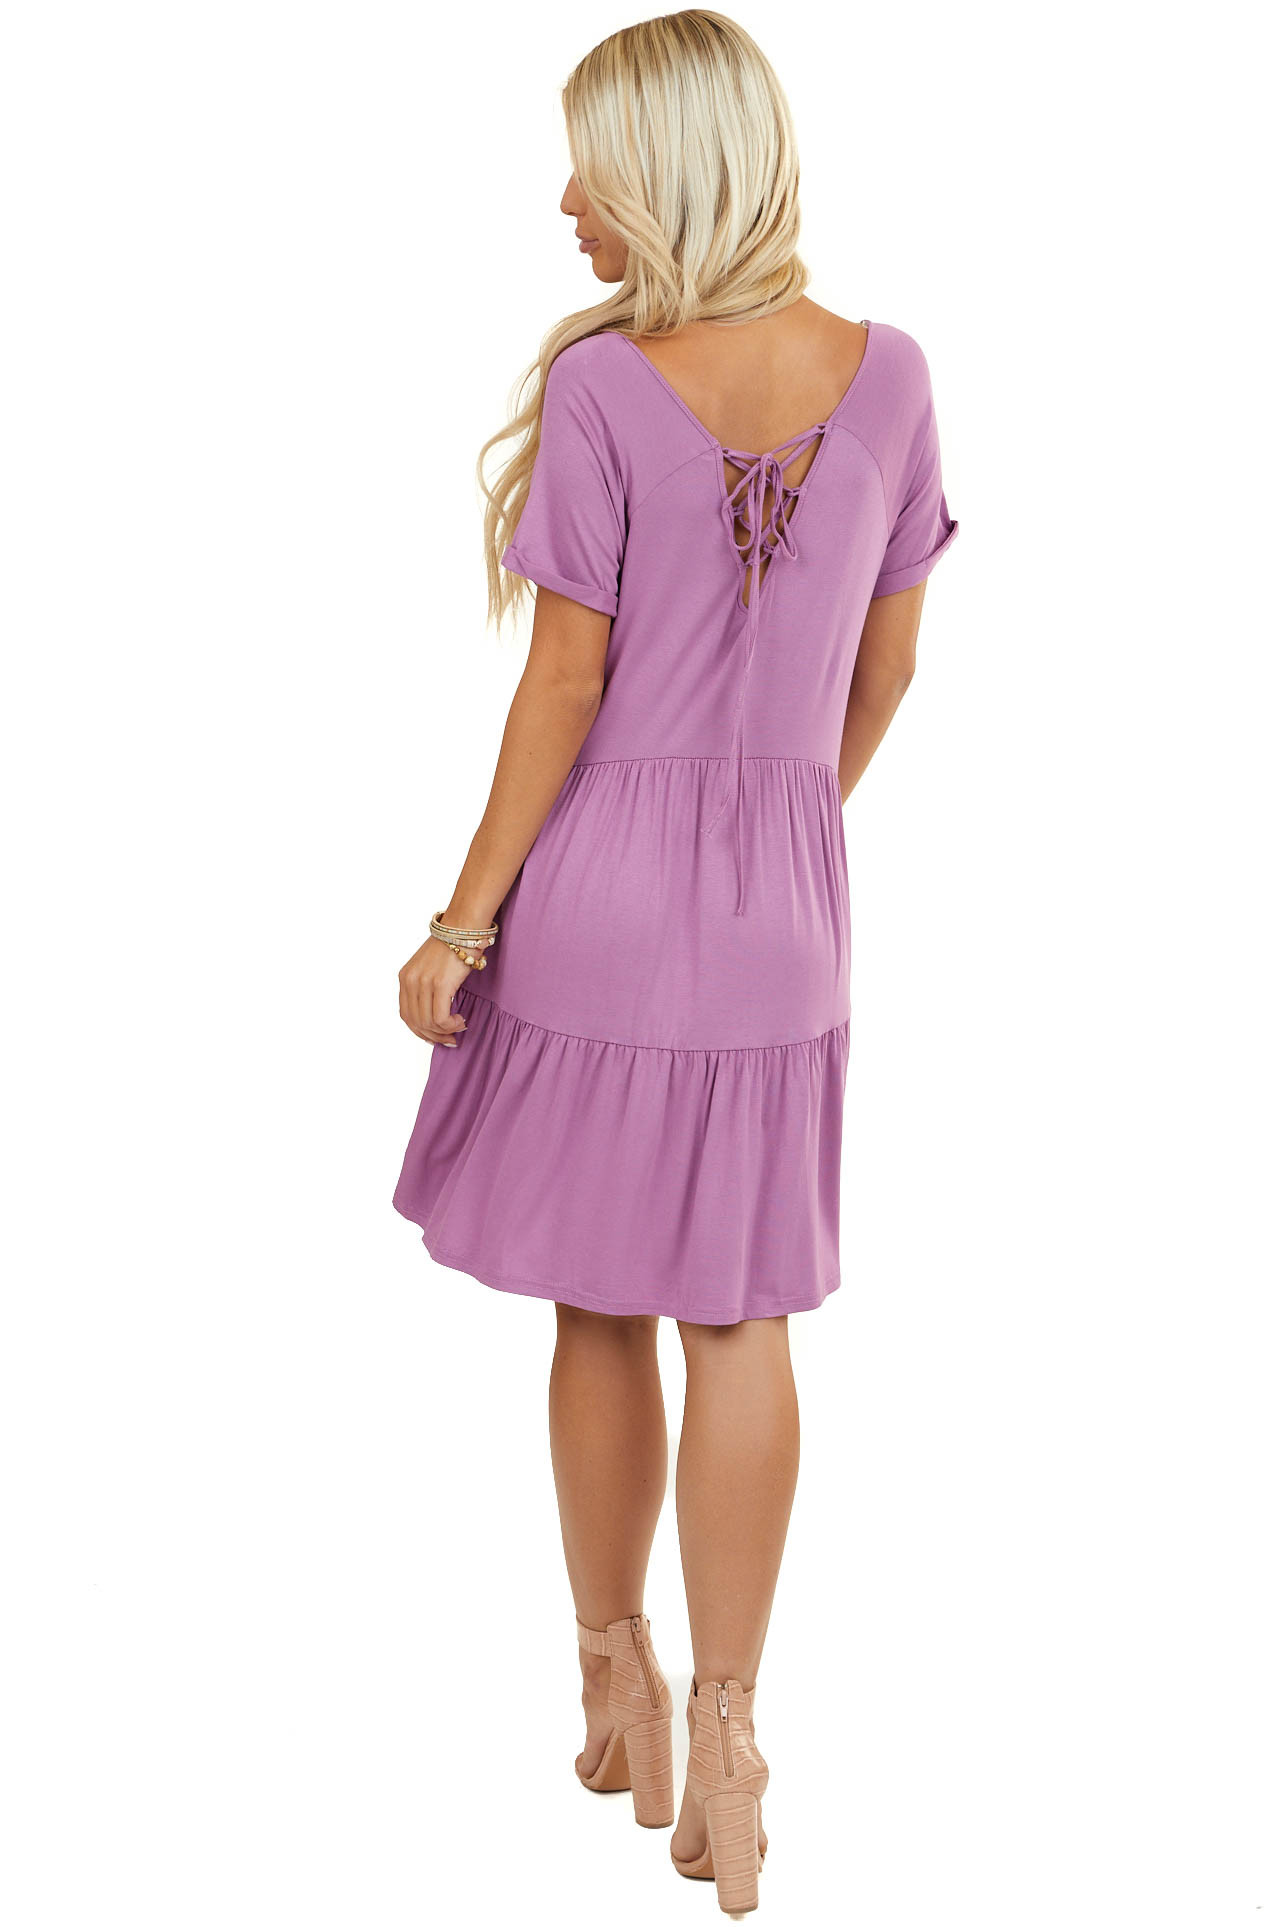 Lilac Criss Cross Laced Up Back Tiered Short Knit Dress